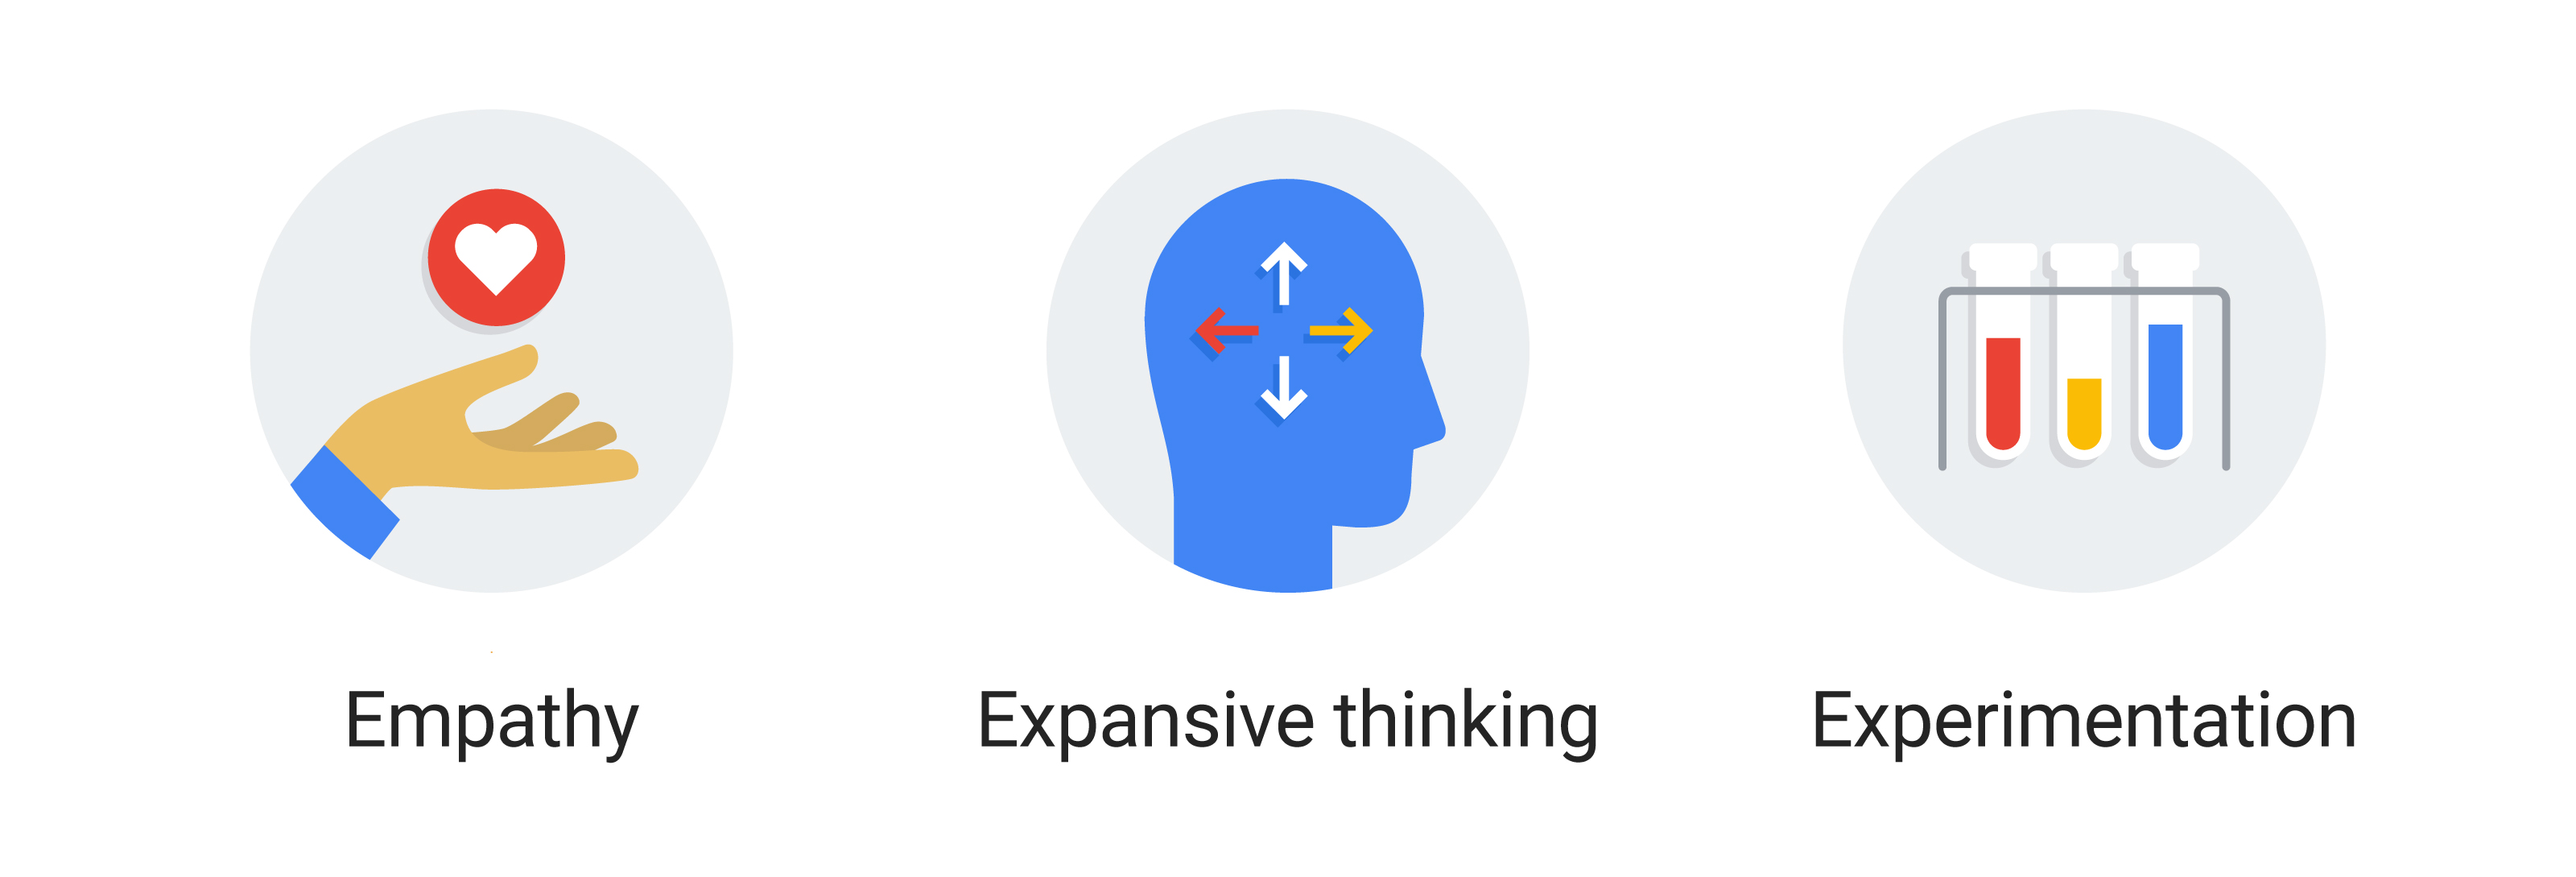 A hand holding a heart icon: Empathy. A blue head with arrows pointing in 4 directions: Expansive thinking. 3 test tubes: Experimentation.